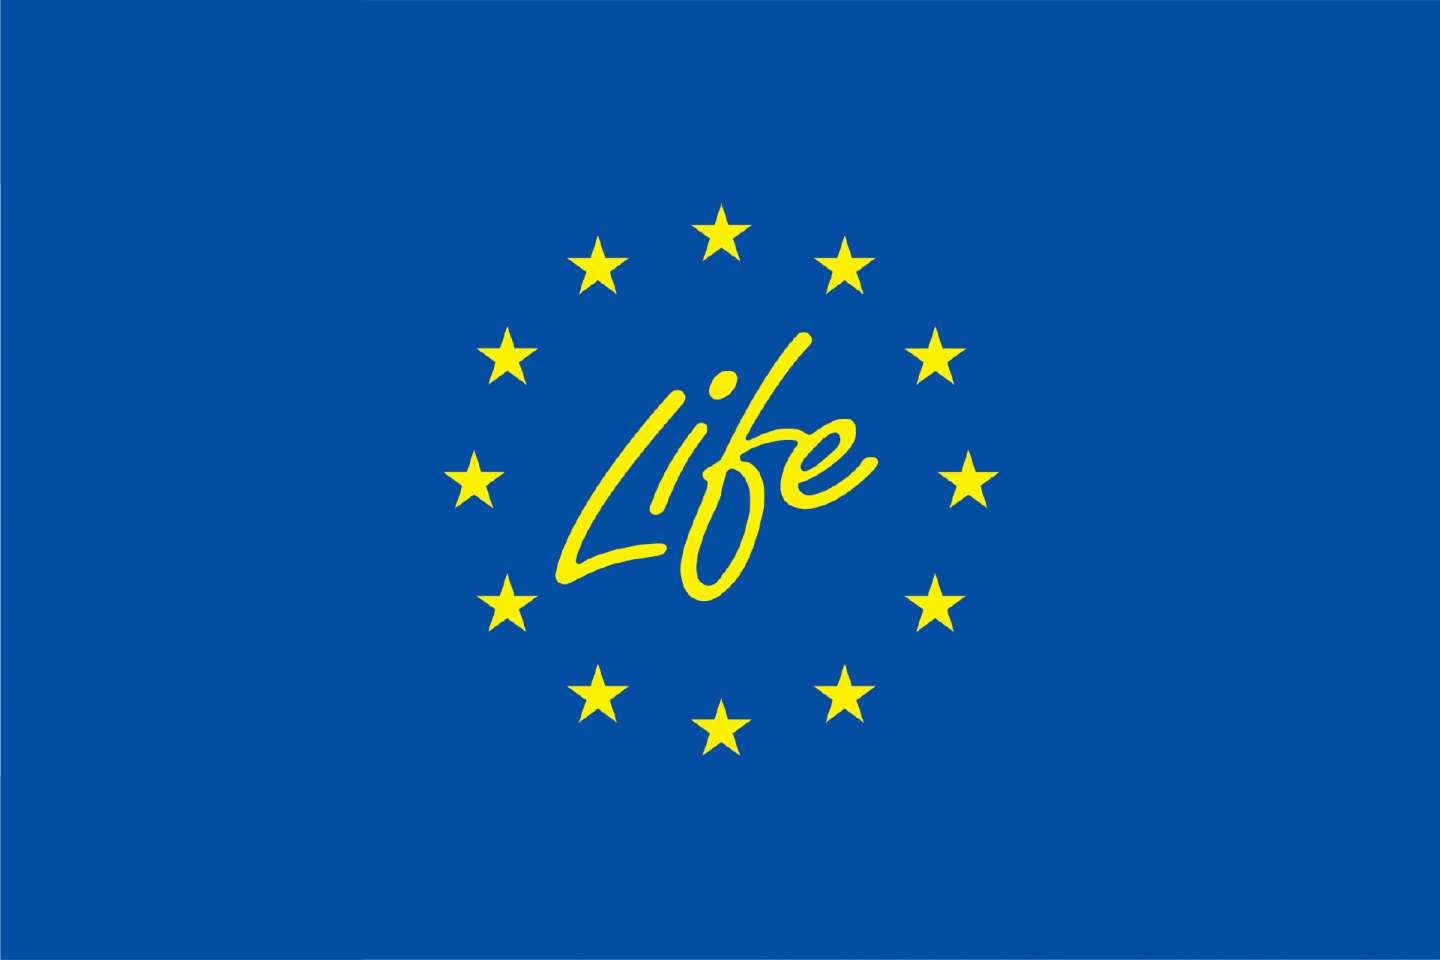 European Commission informs about LIFE Energy project